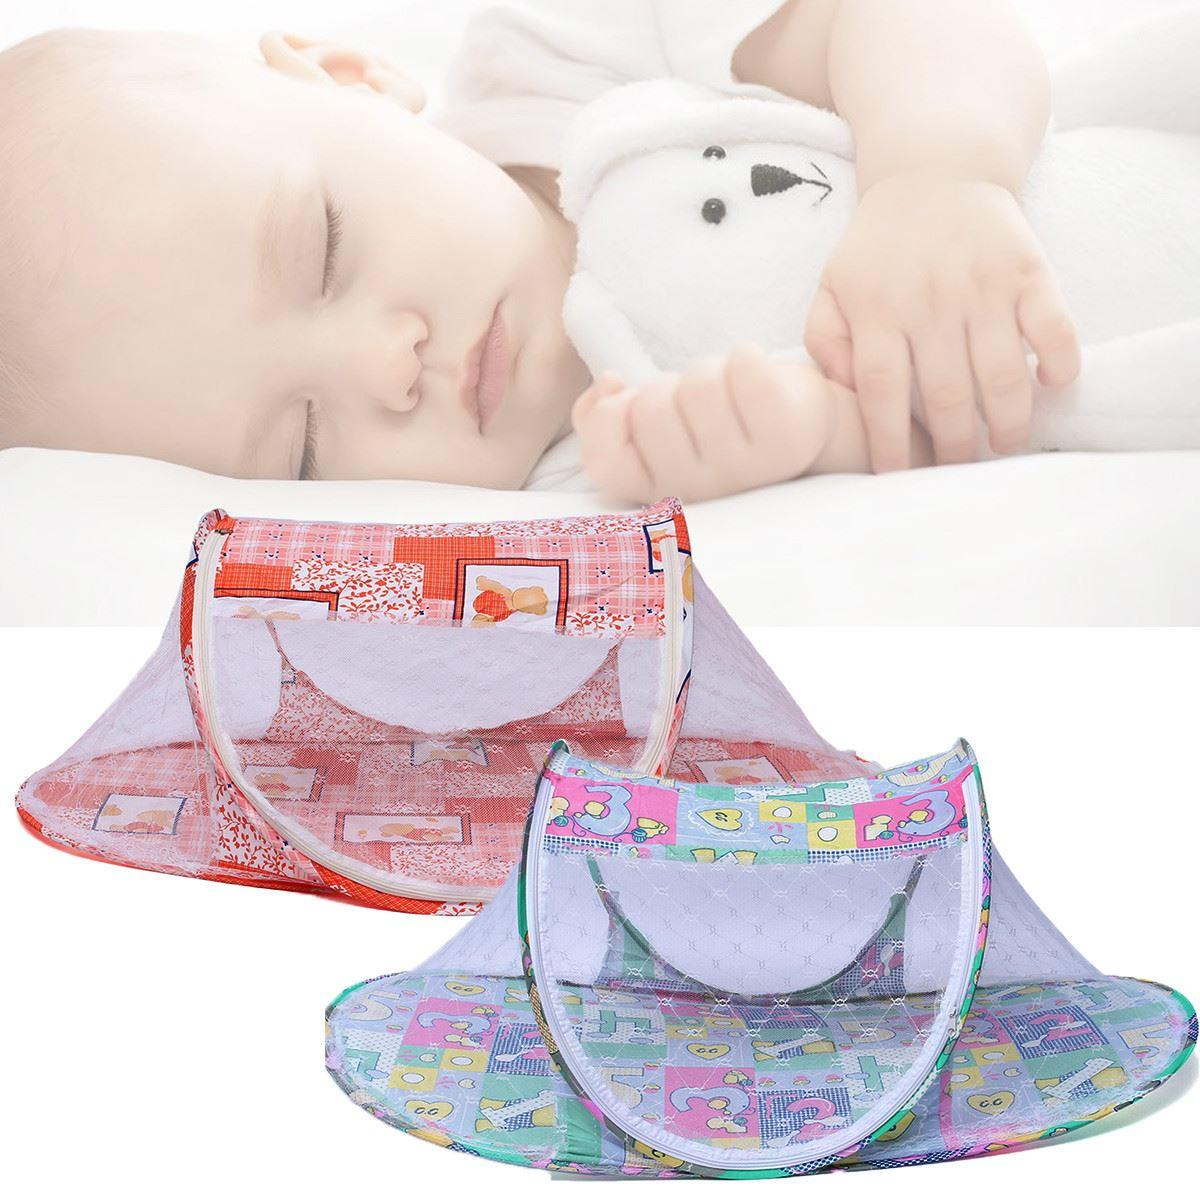 Towel Baby Crib Mosquito Net Foldable Bedding New Portable Soft 0 ... for Folding Mosquito Net For Baby  45gtk